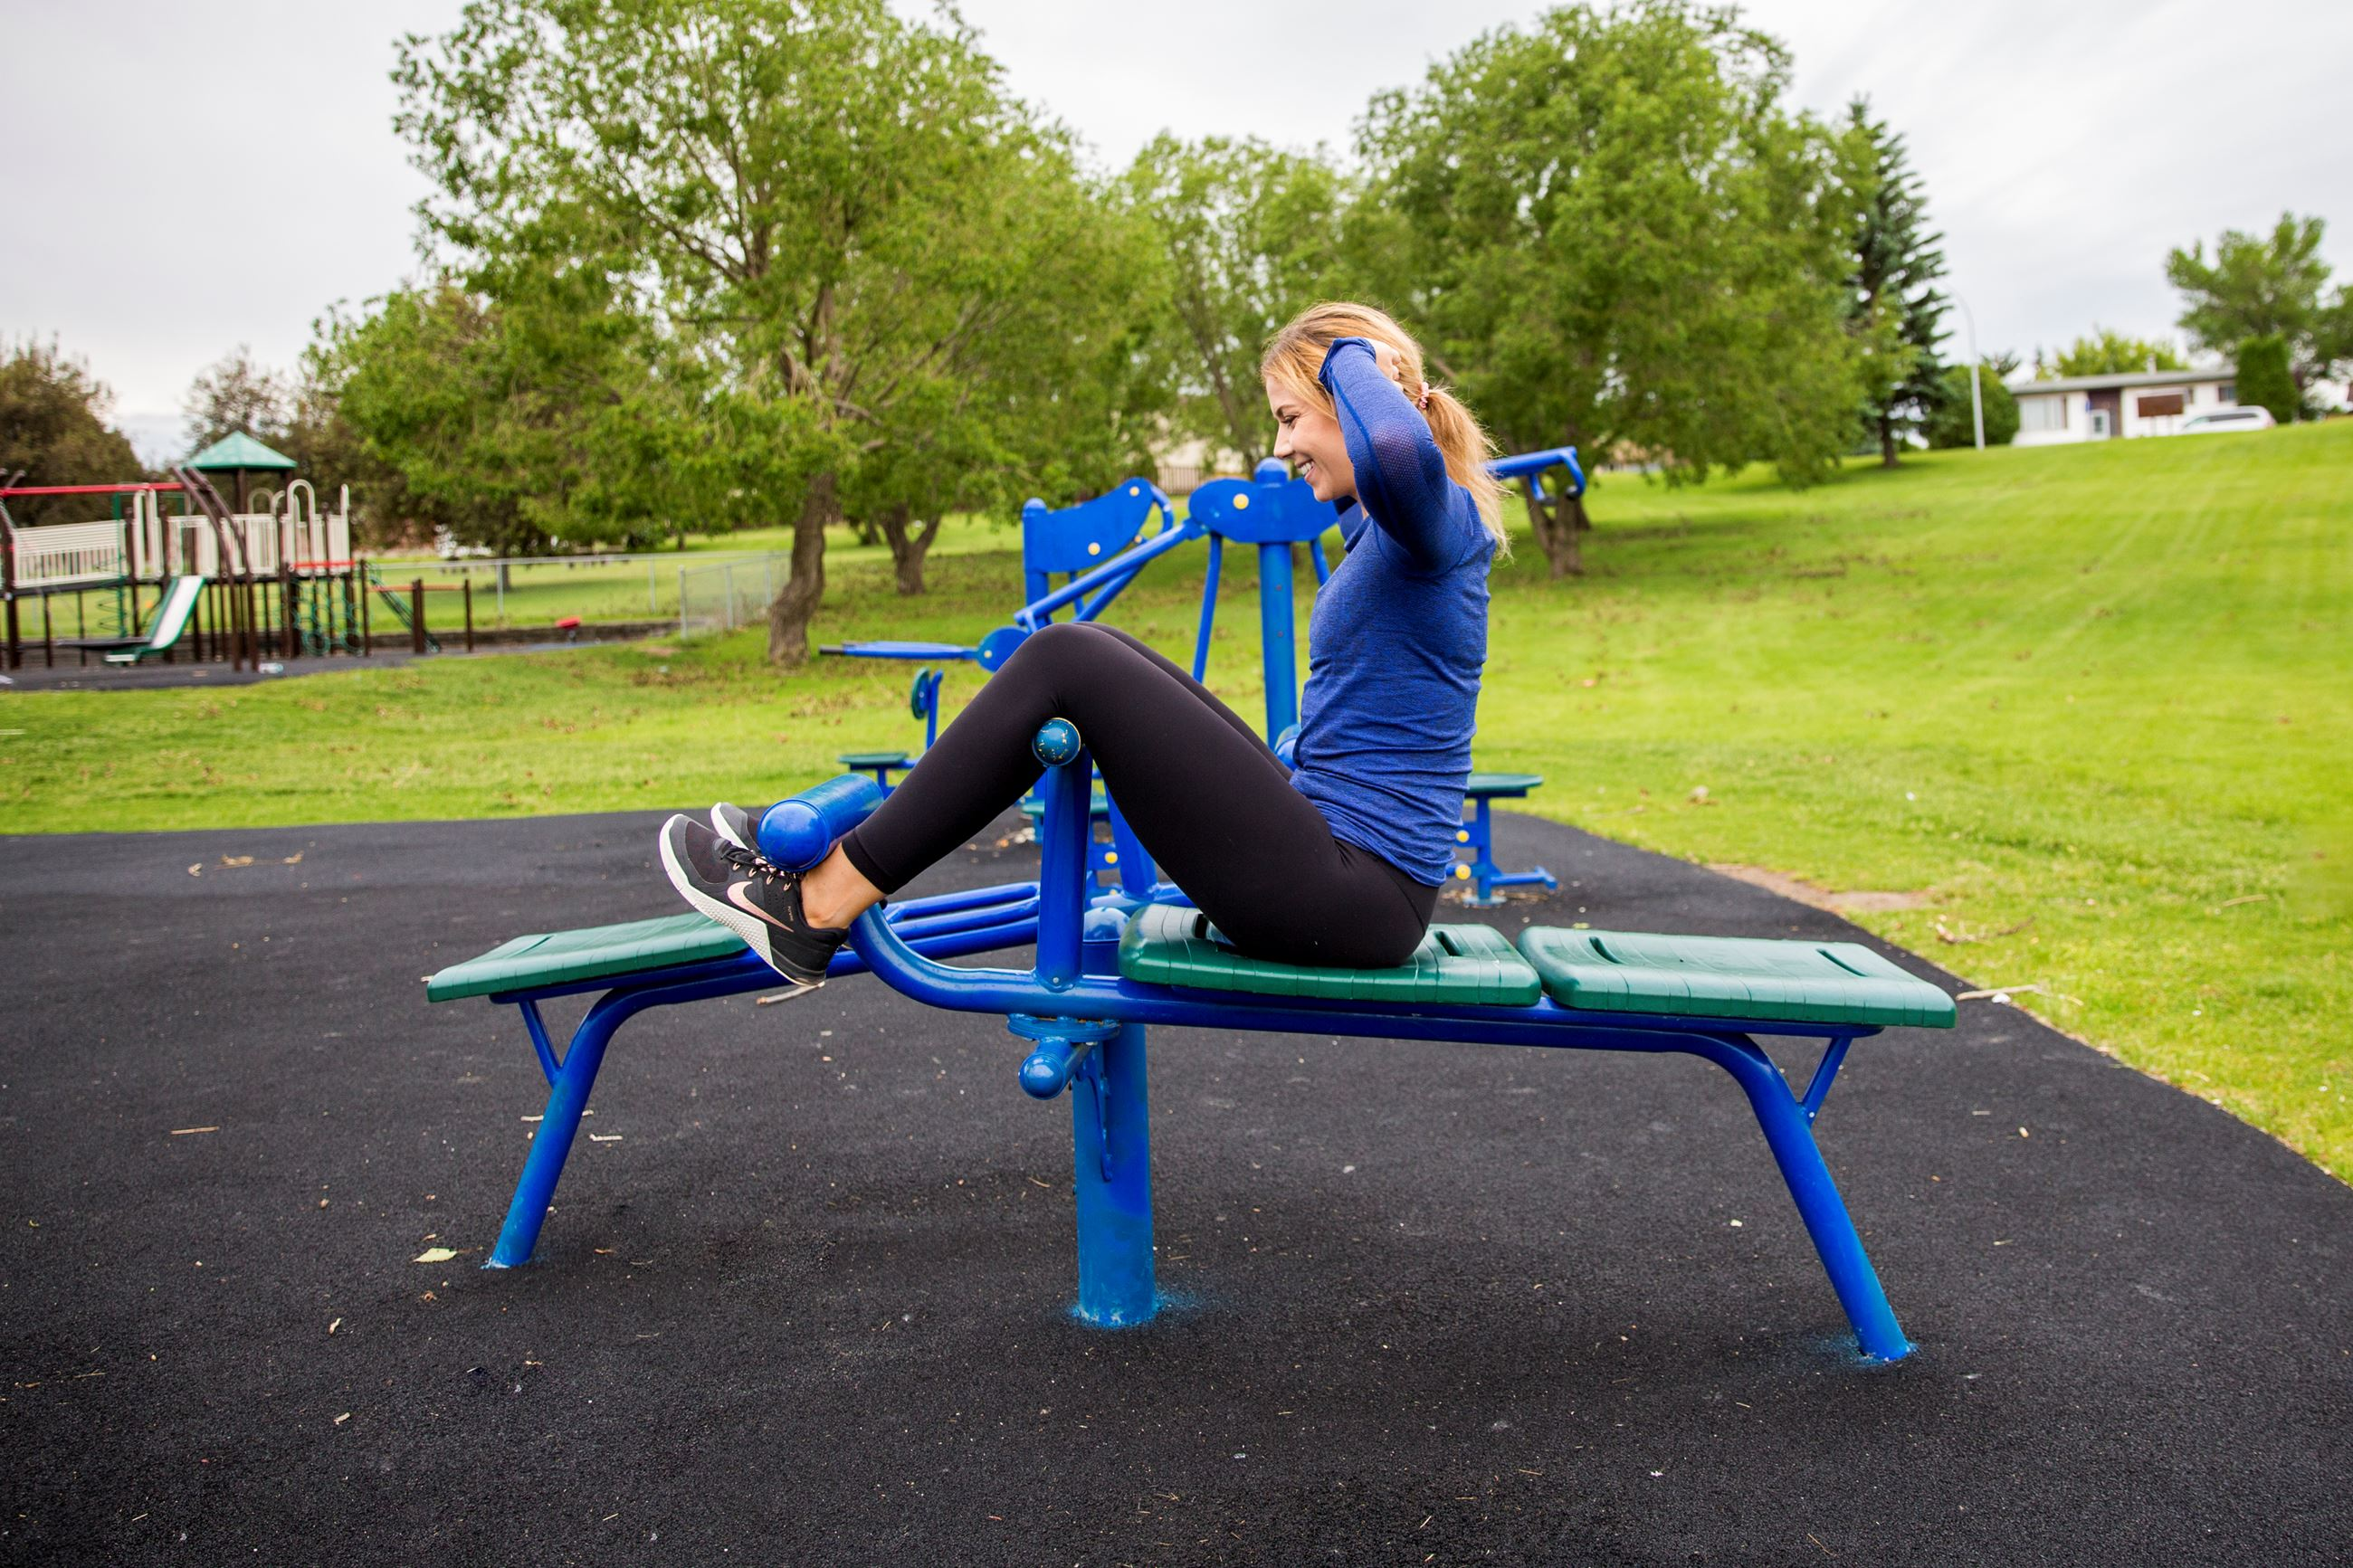 View a video demonstrating the use of the Decline Sit-up Bench equipment